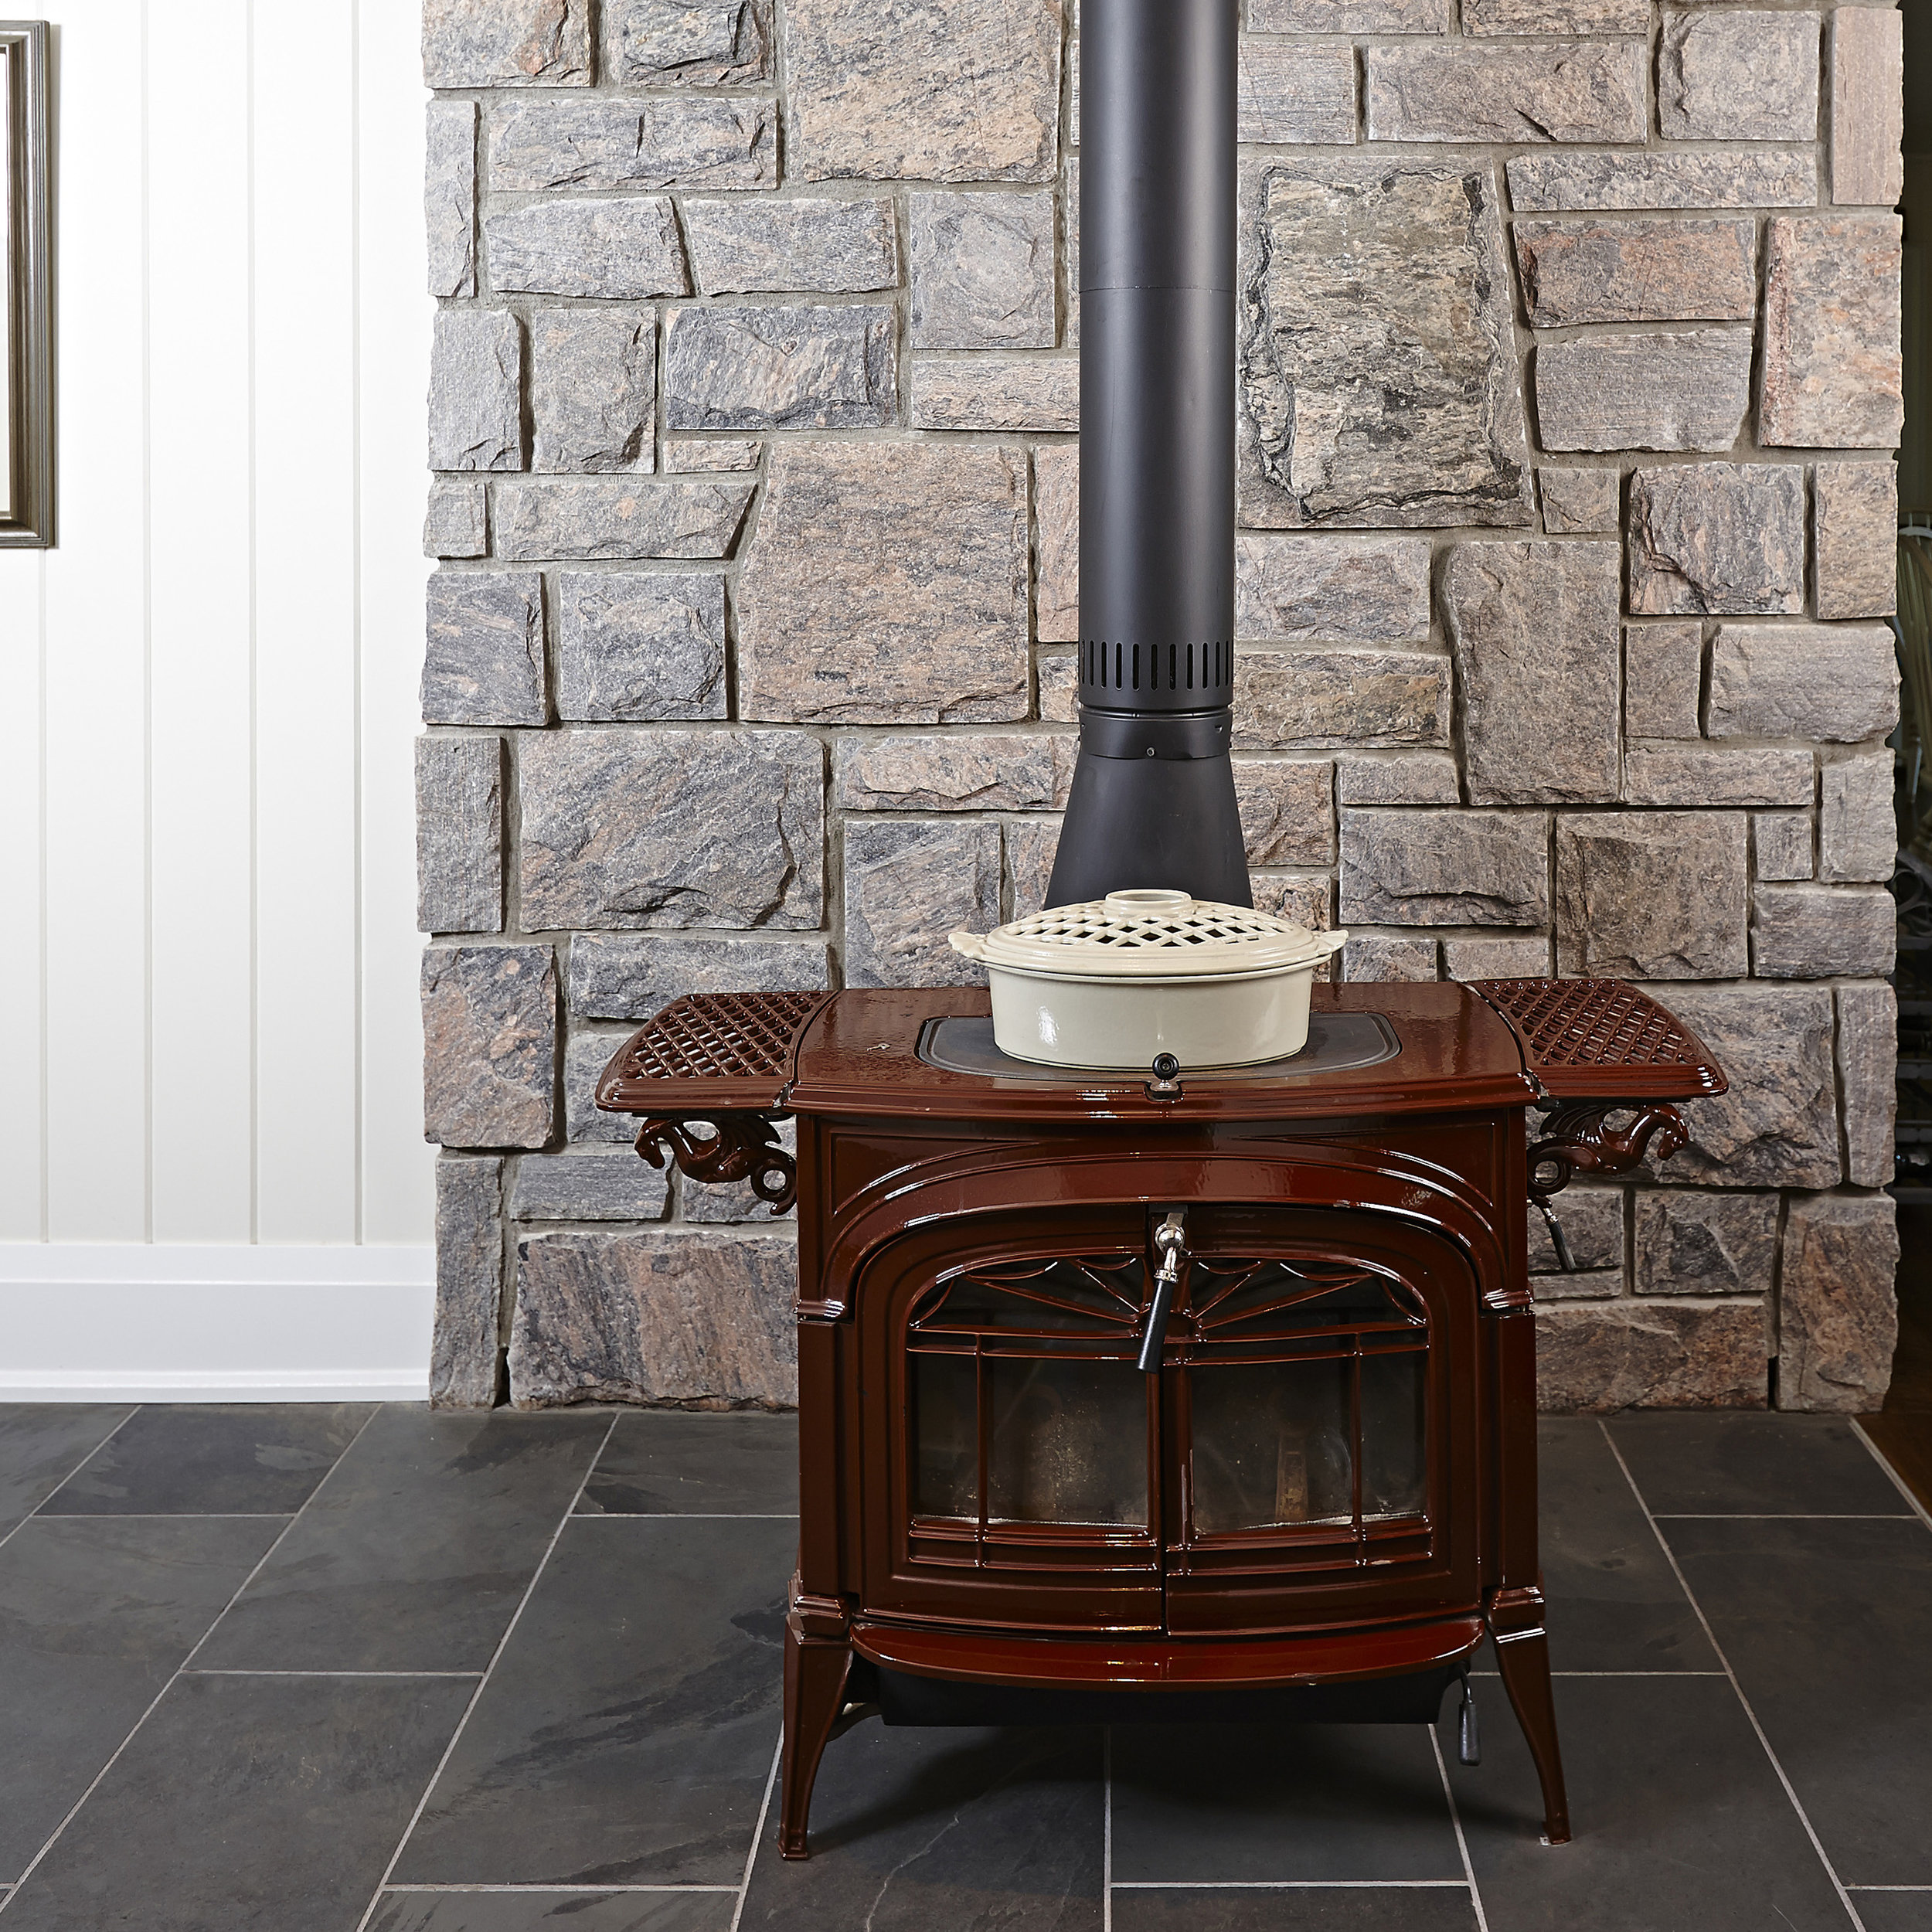 INTERIOR - Imagine the possibilities for your interior with a custom stone feature or installation. We bring your dreams to life with our one-of-a-kind designs that enhance the character and style of your home or cottage.